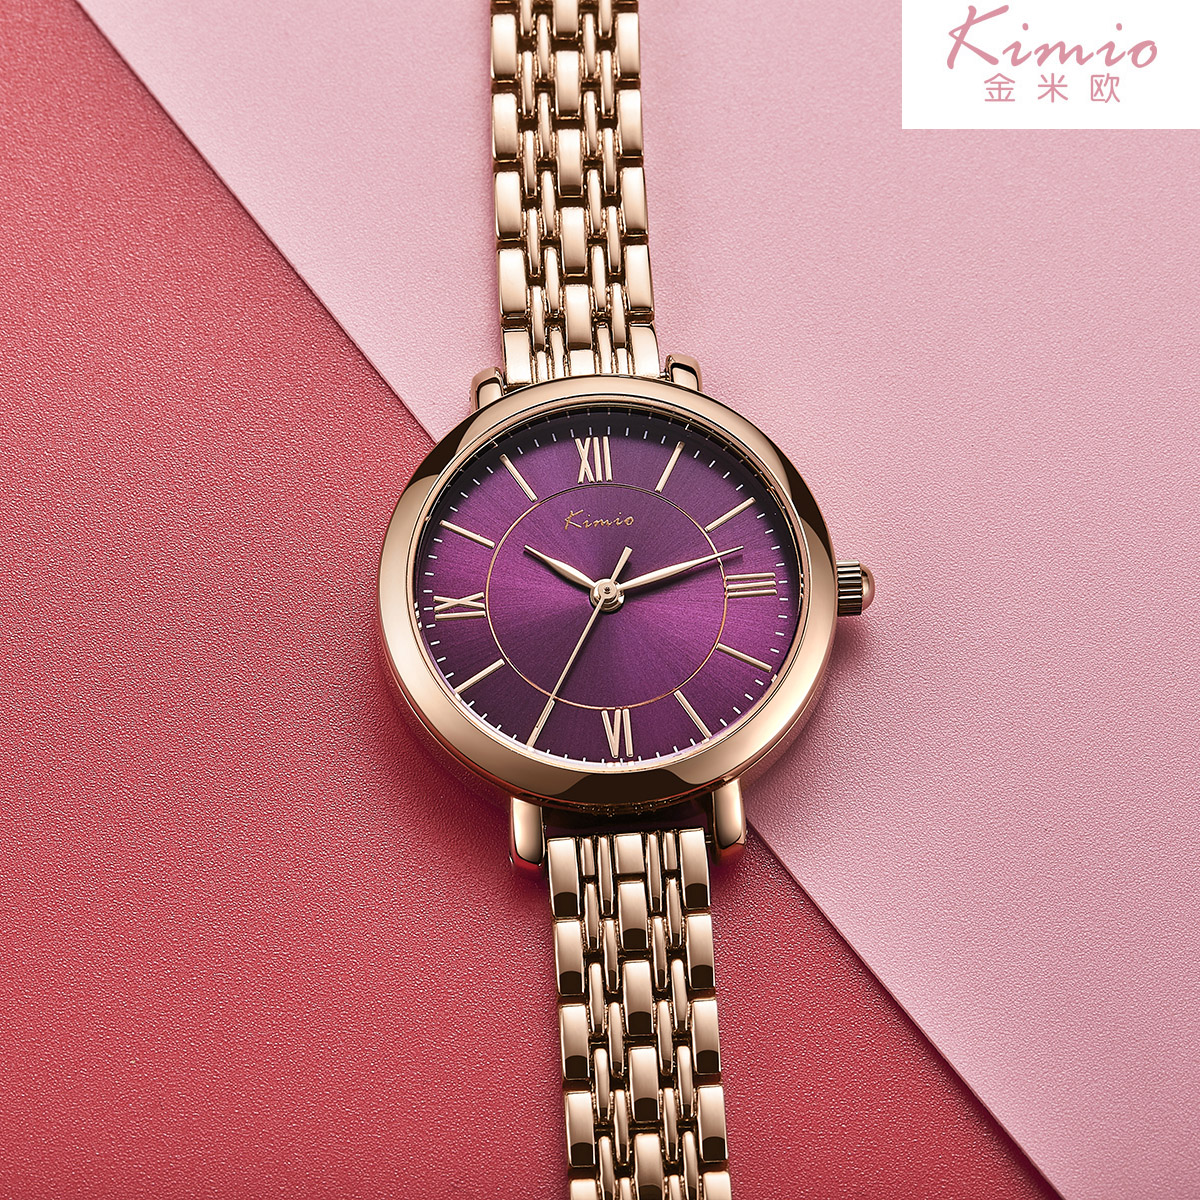 Women Watches Bracelet Watch Ladies KIMIO Simple Roman Numerals Dial Rose Gold Luxury Brand Quartz Womans Wrist Watches kimio brand bracelet watches women reloj mujer luxury rose gold business casual ladies digital dial clock quartz wristwatch hot page 2